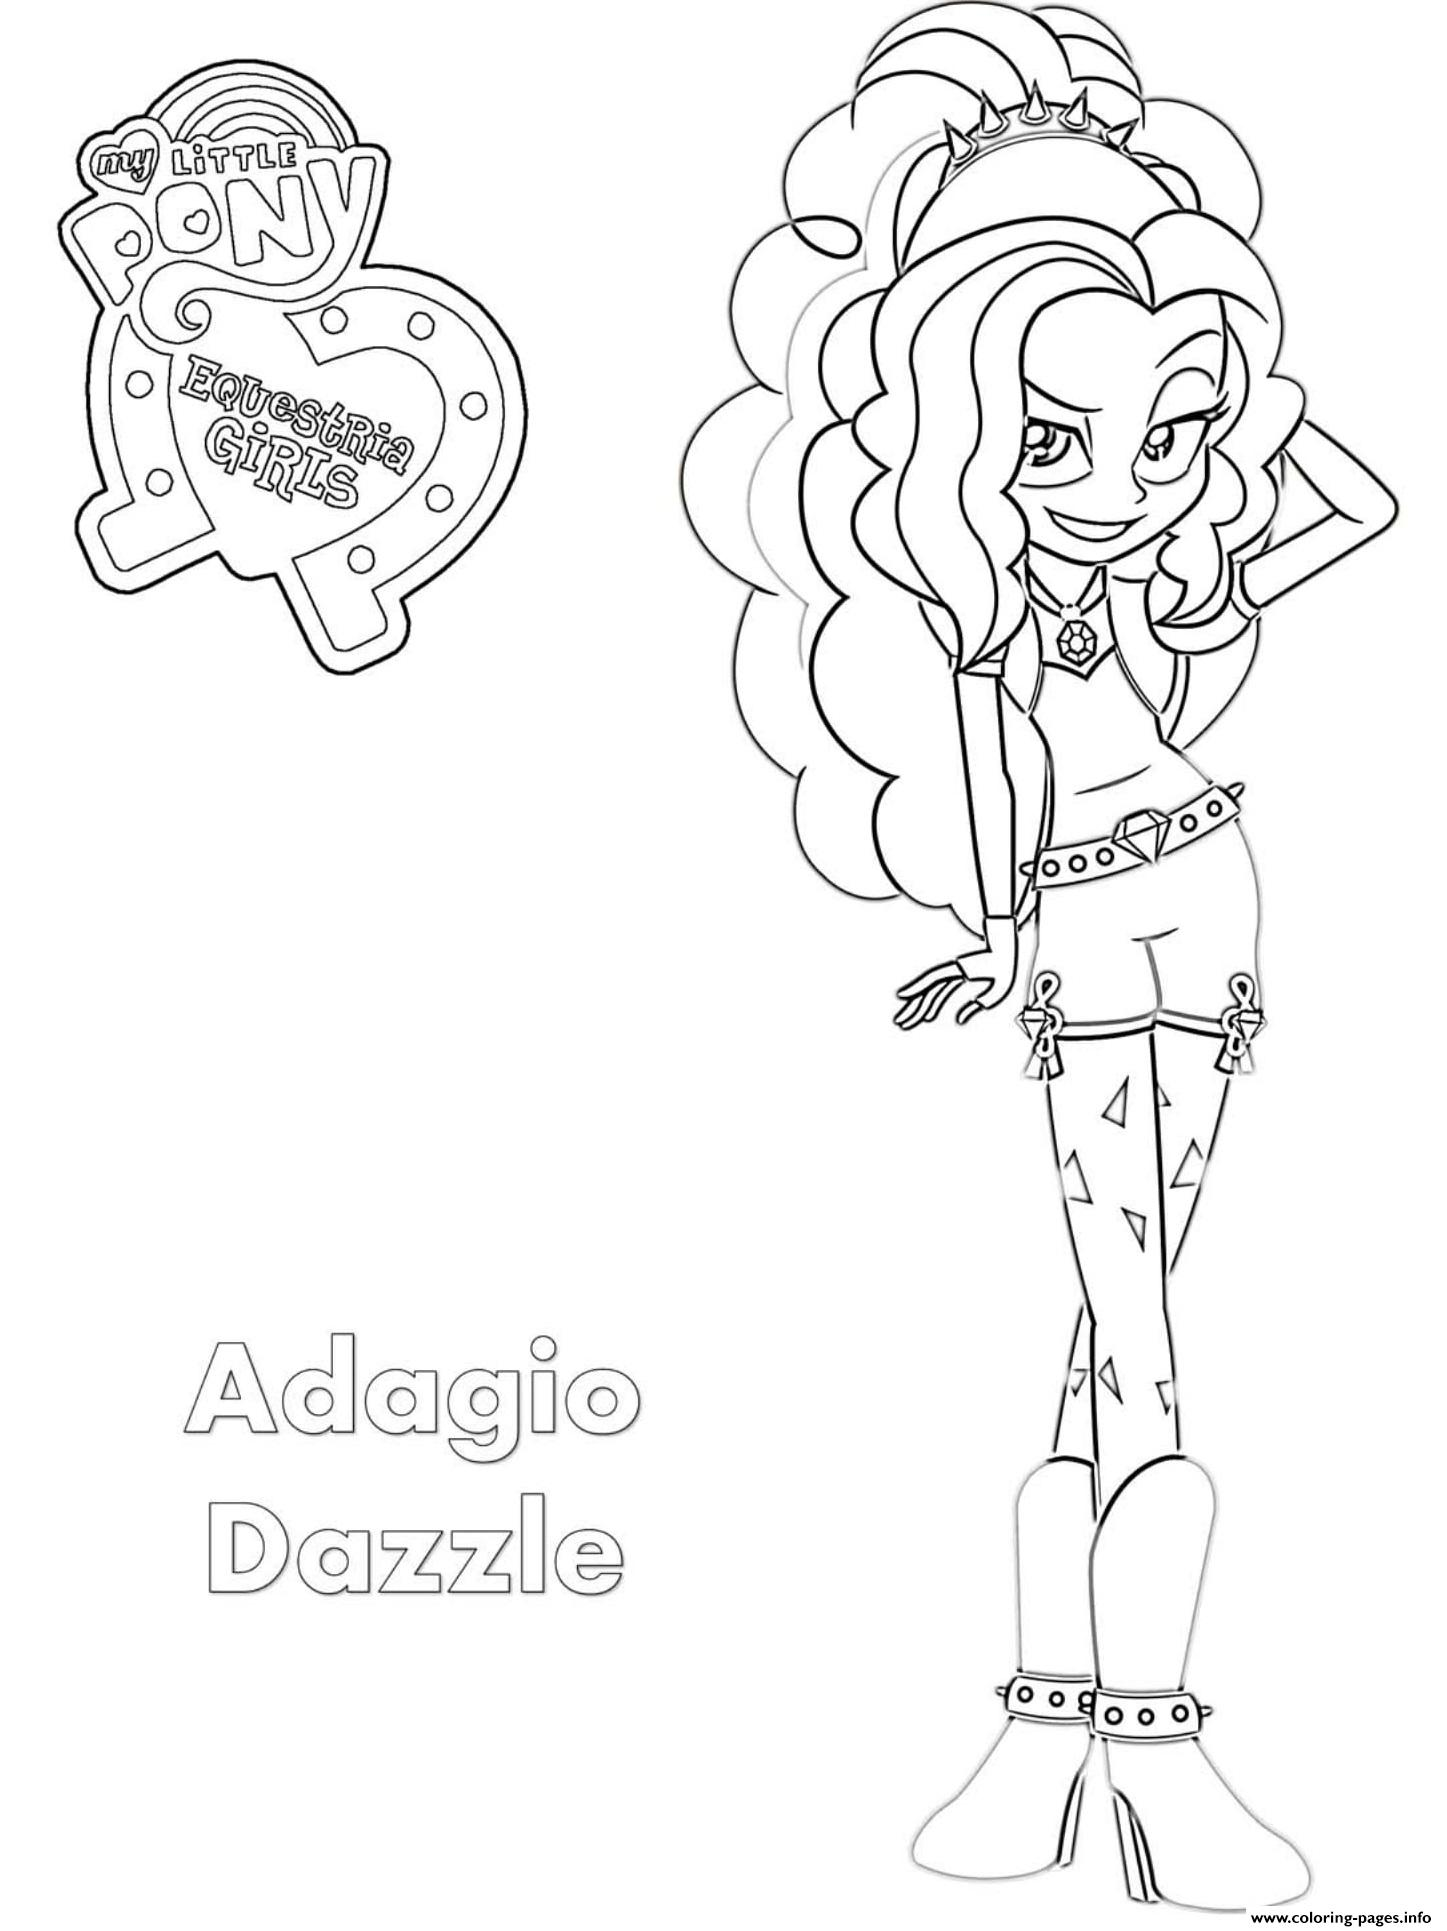 Equestria Girls Adagio Dazzle Coloring Pages Printable